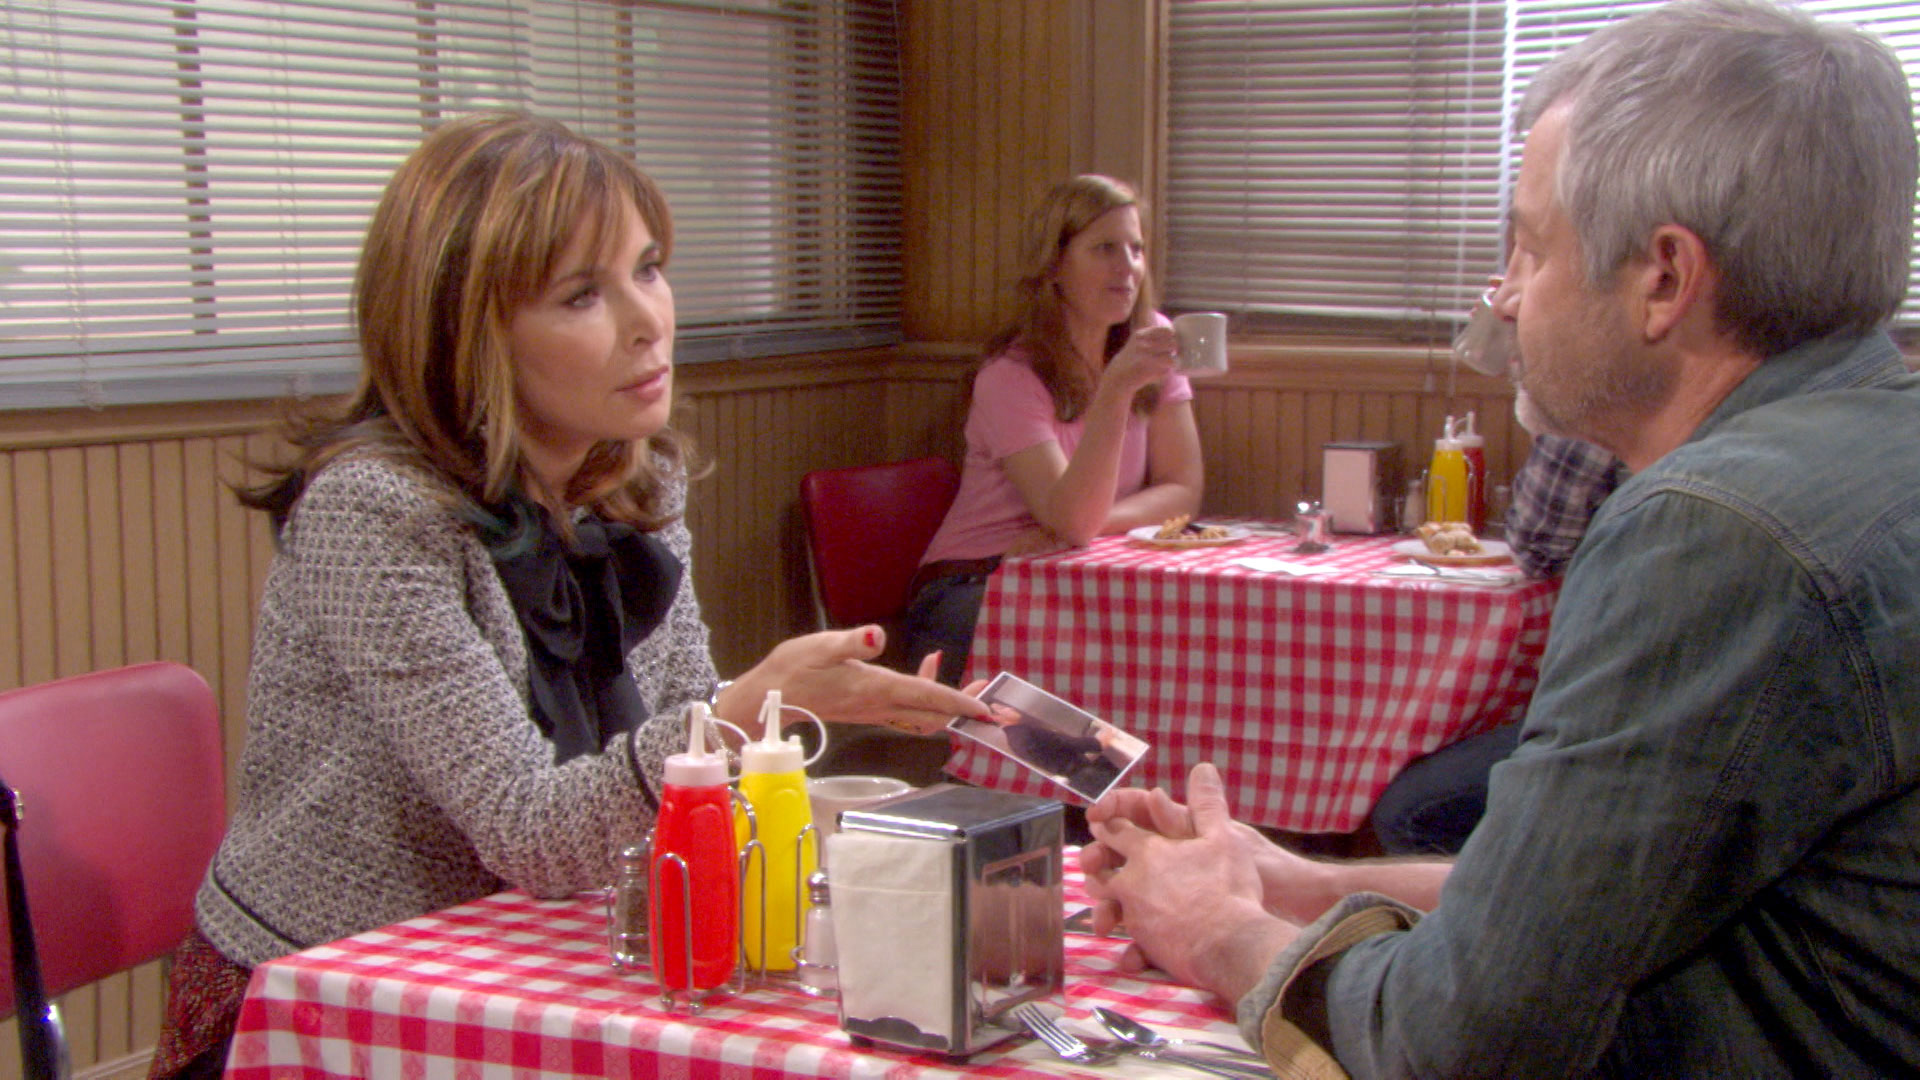 Kate is stunned when she learns Clyde's connection to Jordan.